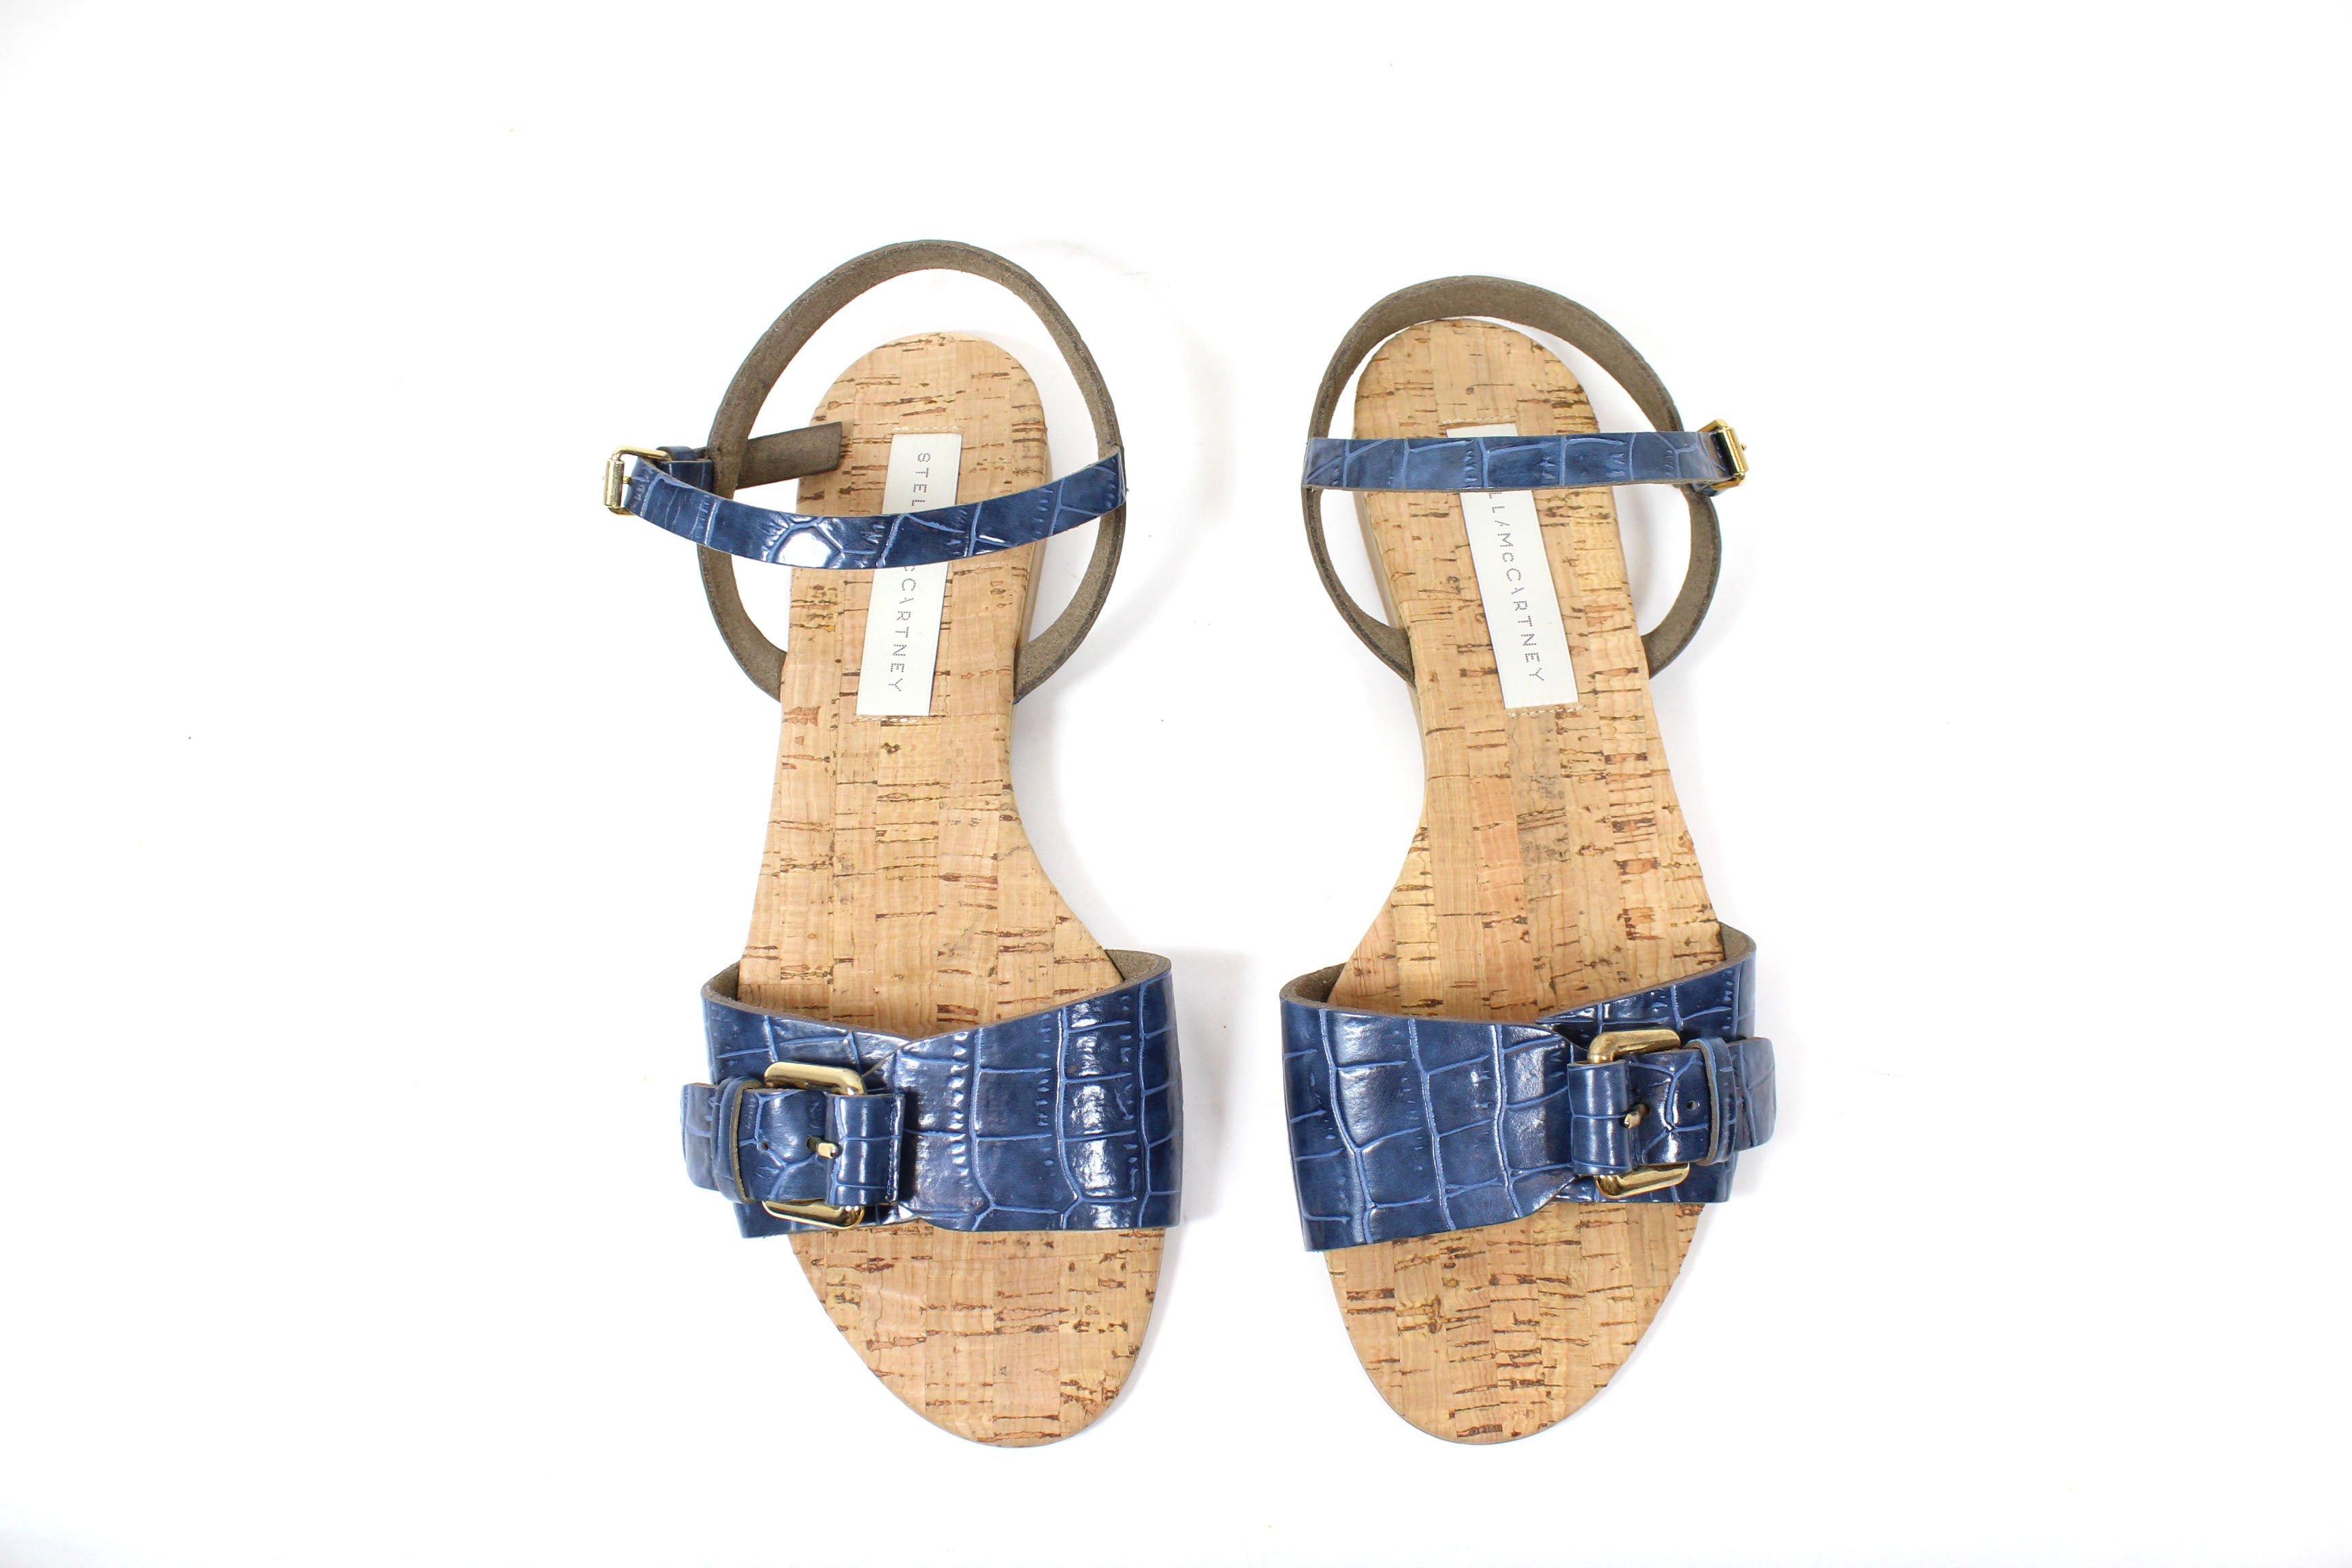 Stella McCartney Blue Vegetarian Leather Cork Sandals (Size 39)